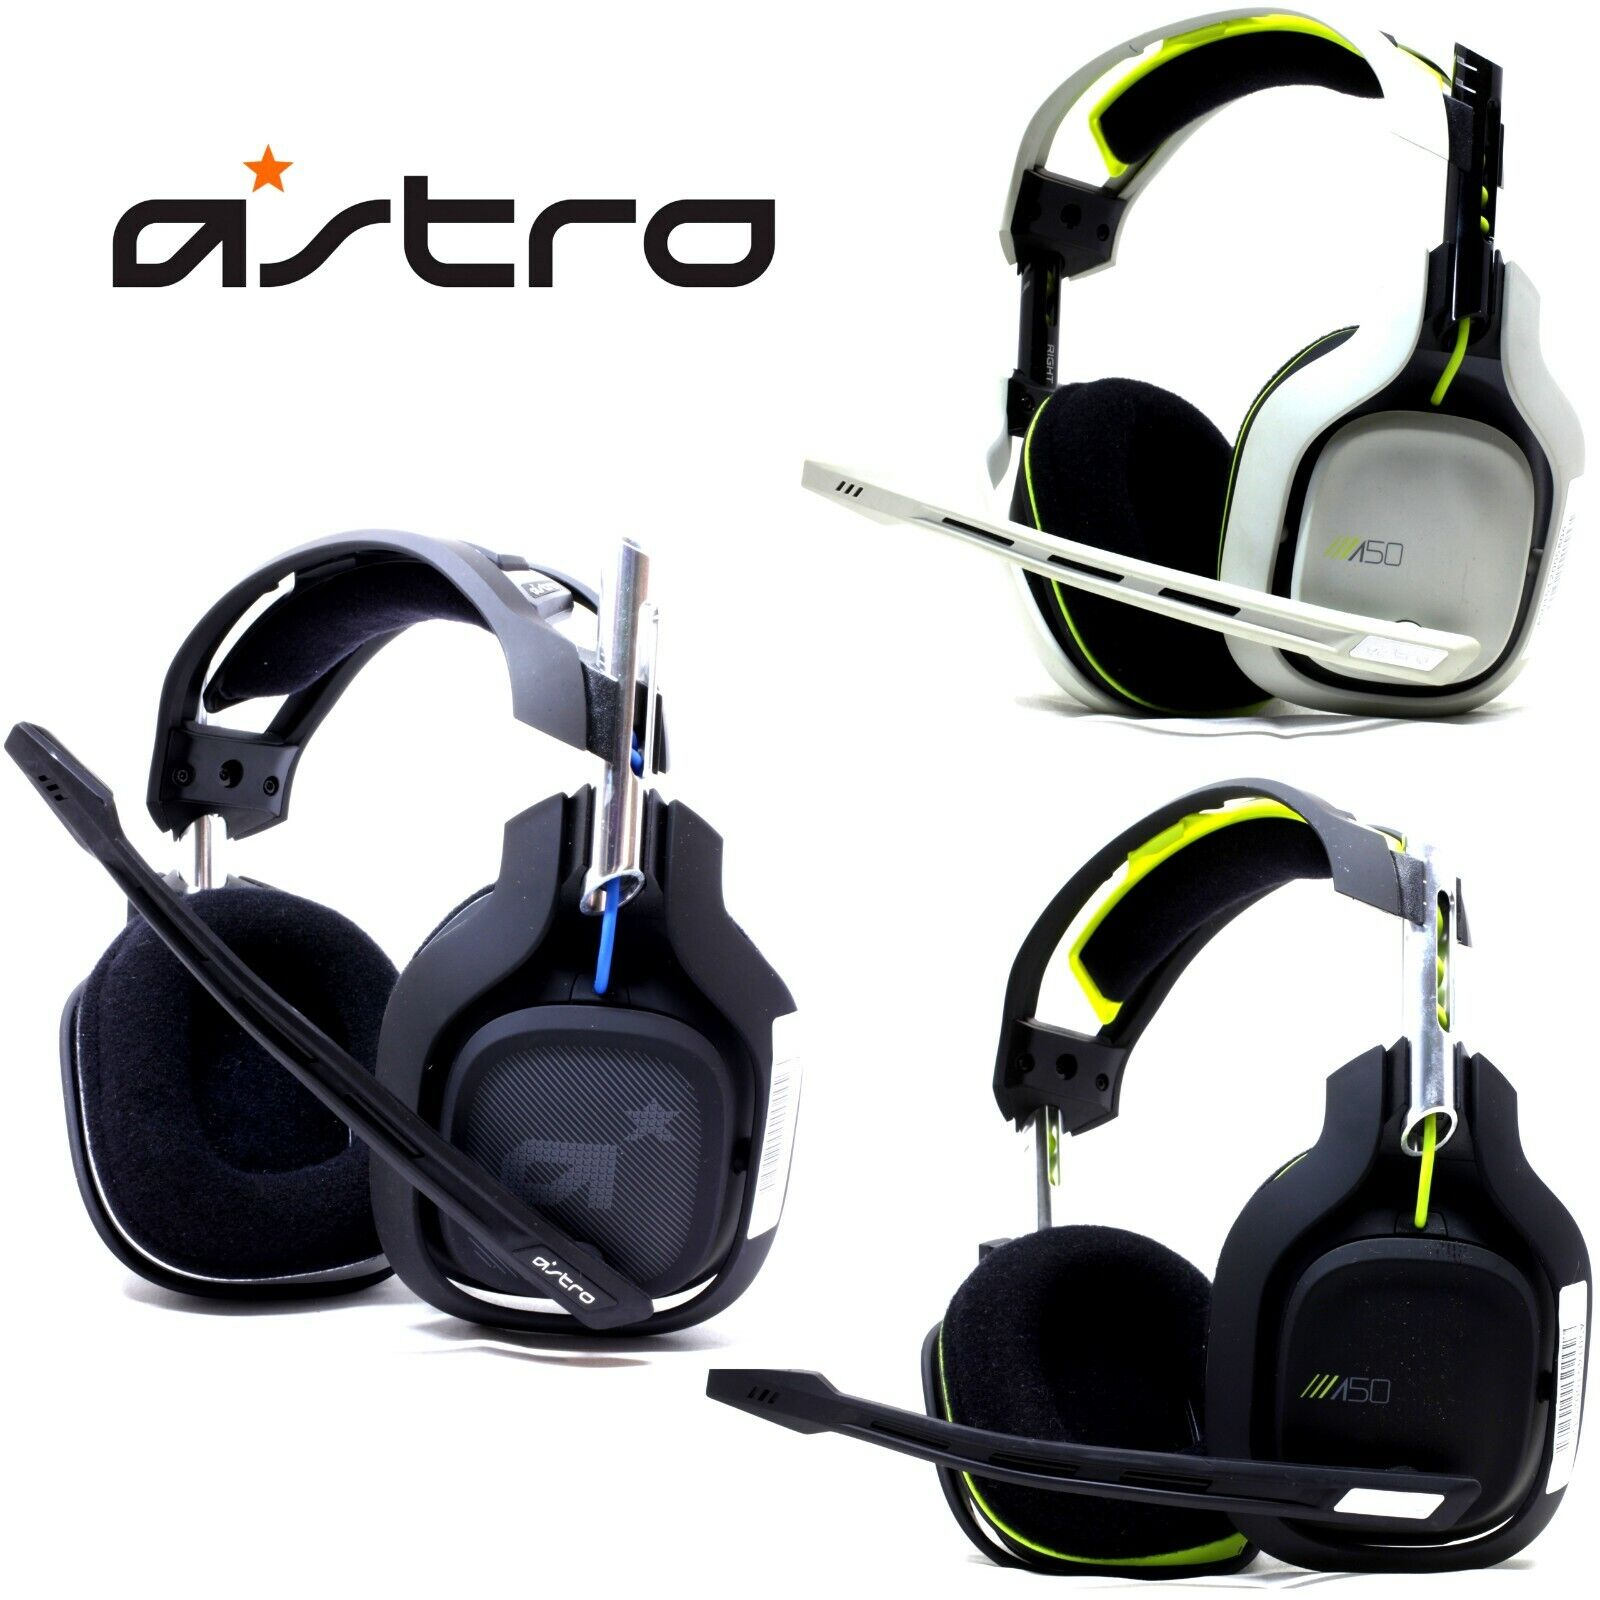 e4be30bbe34481 Astro Gaming A50 Wireless Headset + Base Station for Xbox & PC for sale  online | eBay